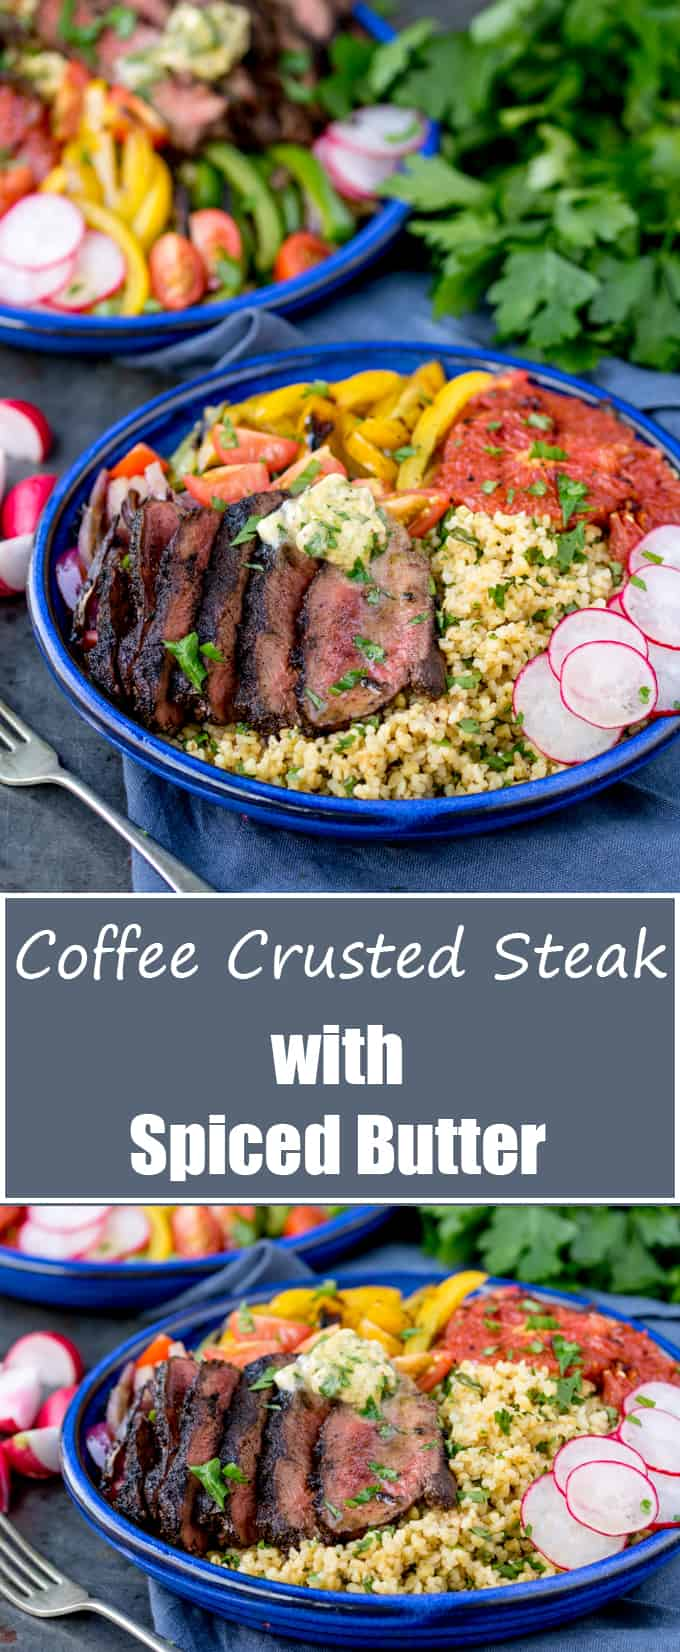 Coffee Crusted Steak Buddha Bowl with Spiced Butter. A real treat! Your questions answered - do I use fresh coffee grounds? Old grounds? Instant coffee?